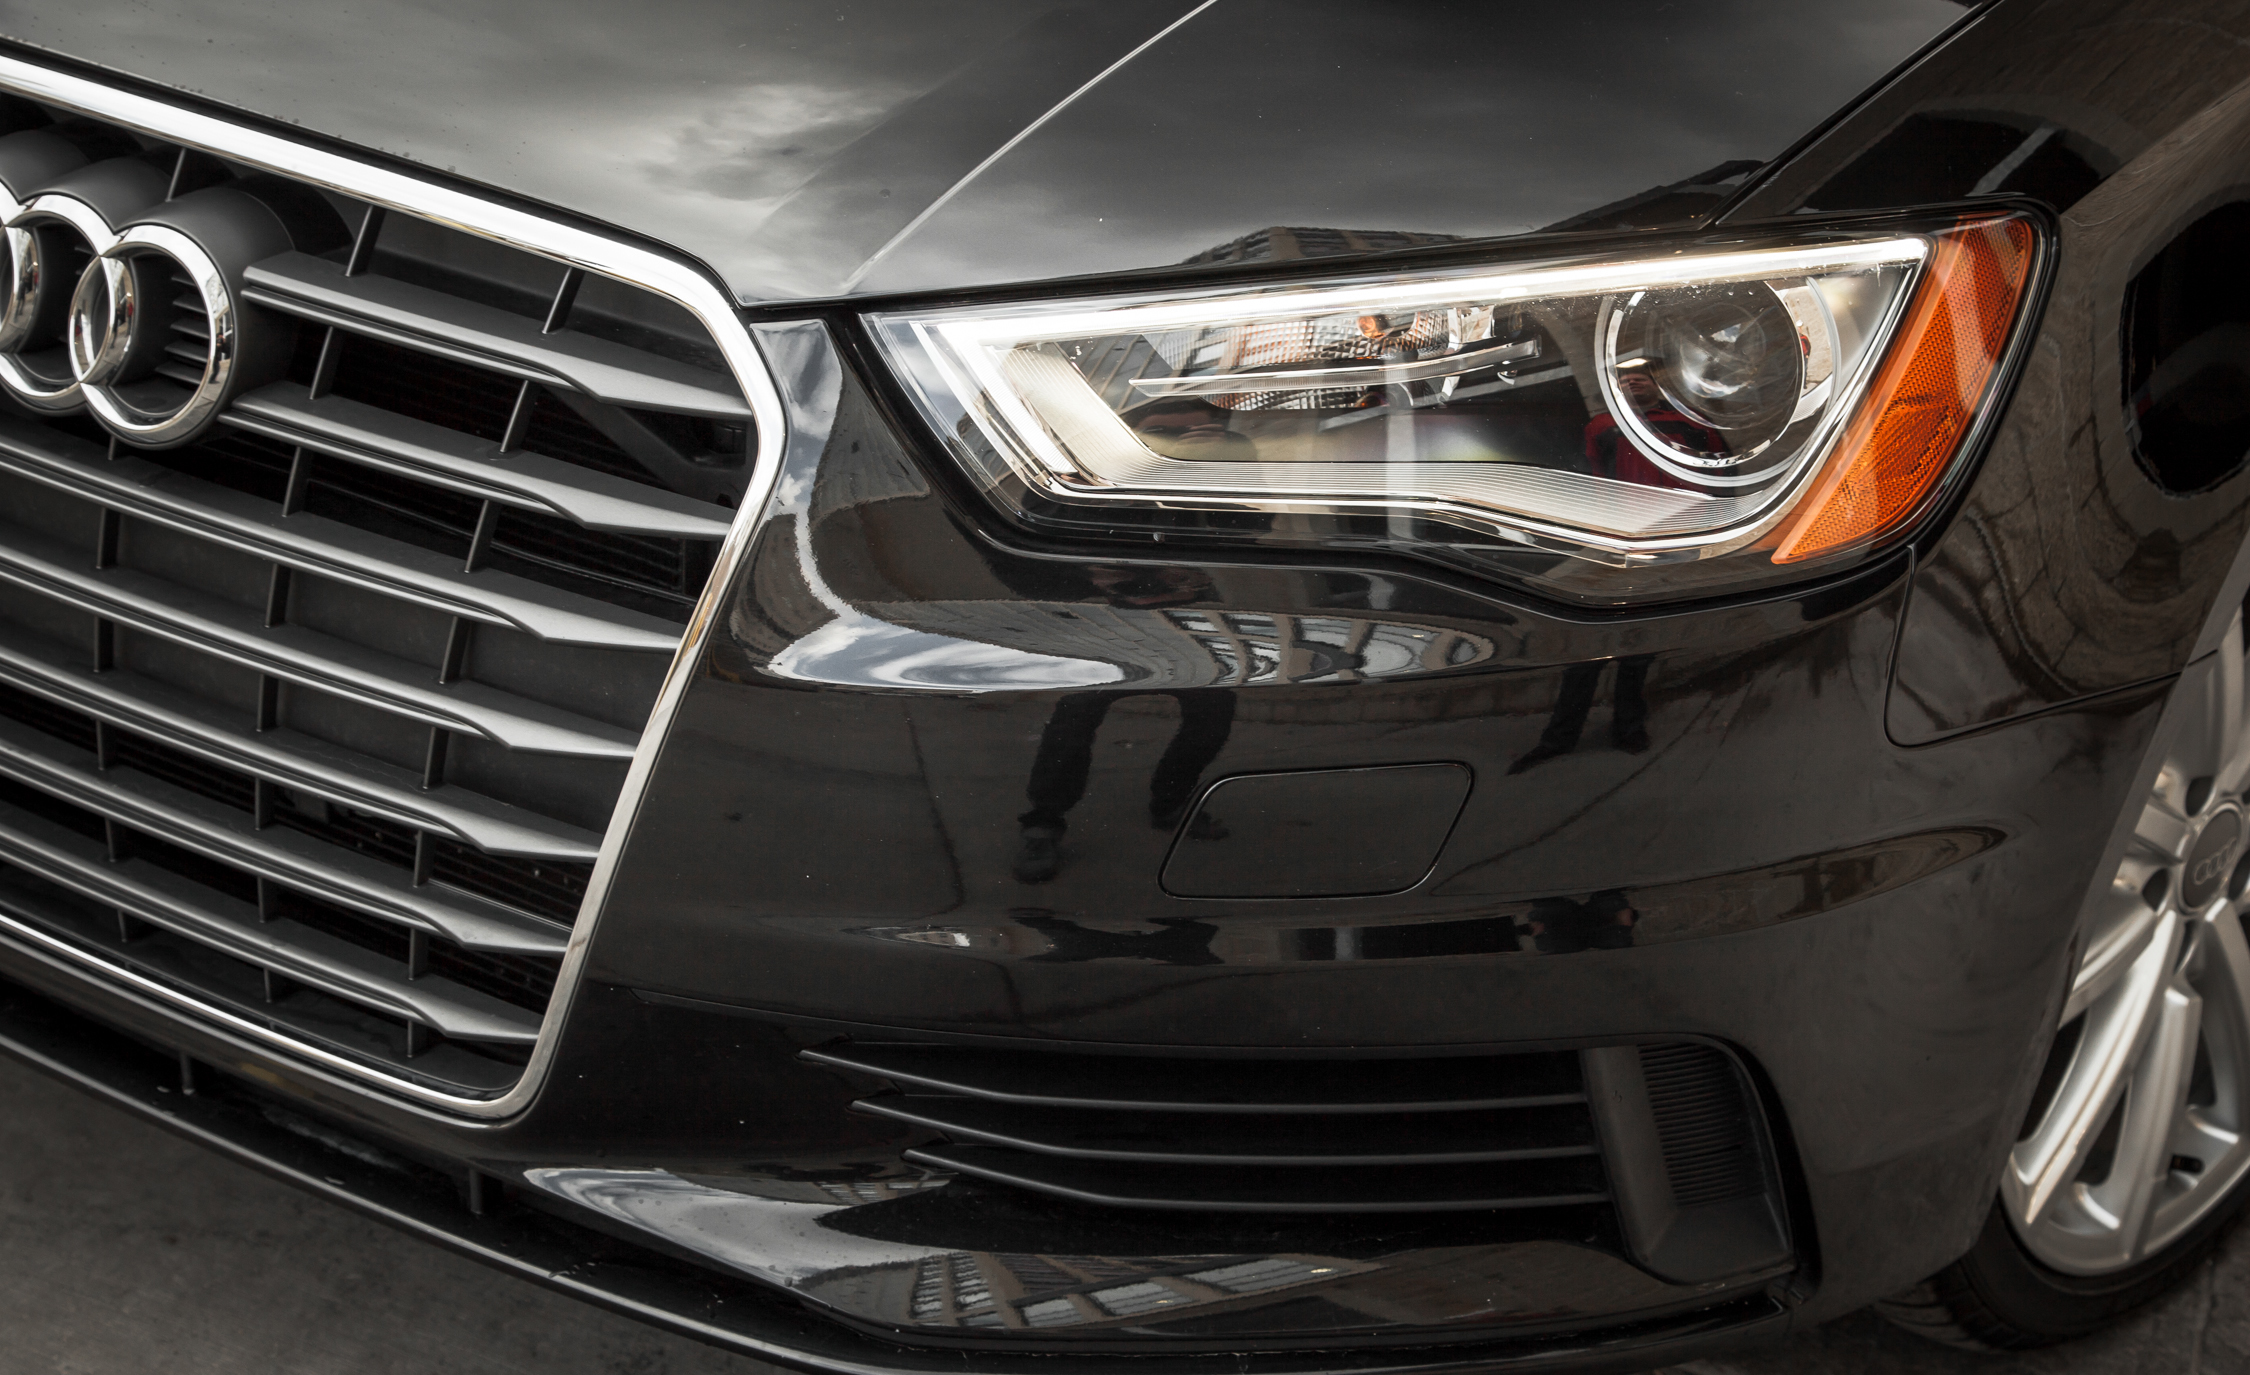 2015 Audi A3 TDI Exterior View Headlamp (Photo 28 of 50)